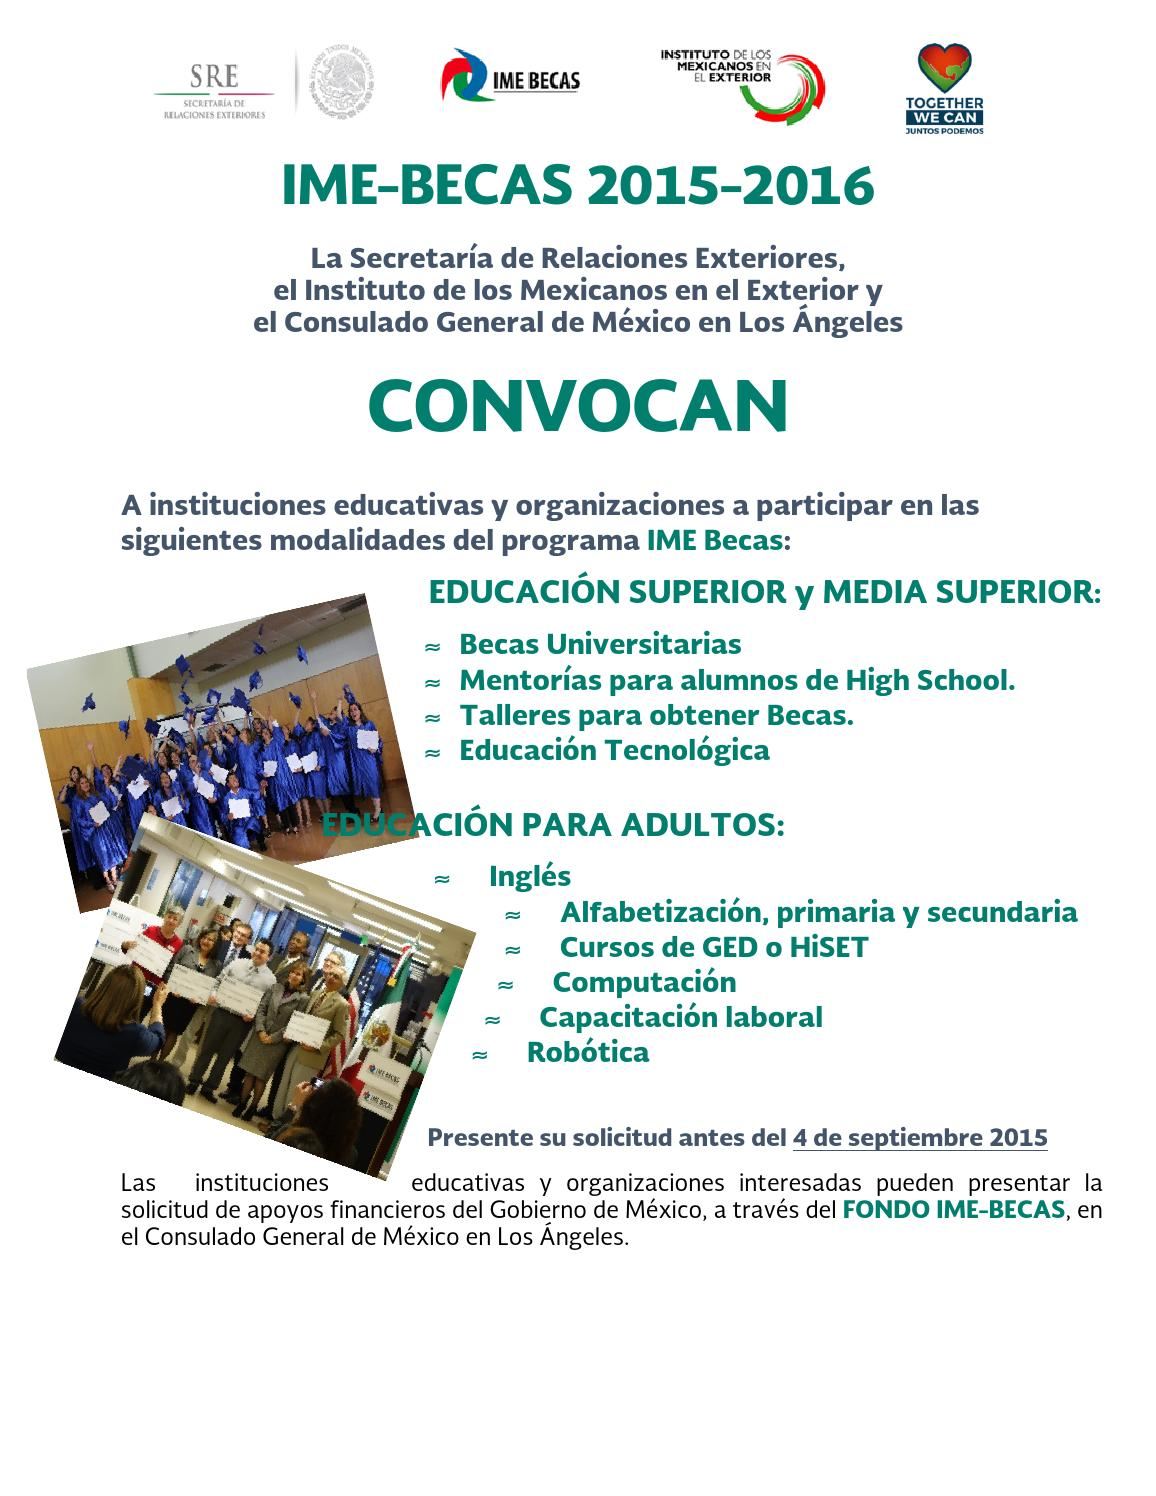 Ime Becas 2015 2016 By Consulmex Los Angeles Page 1 Issuu